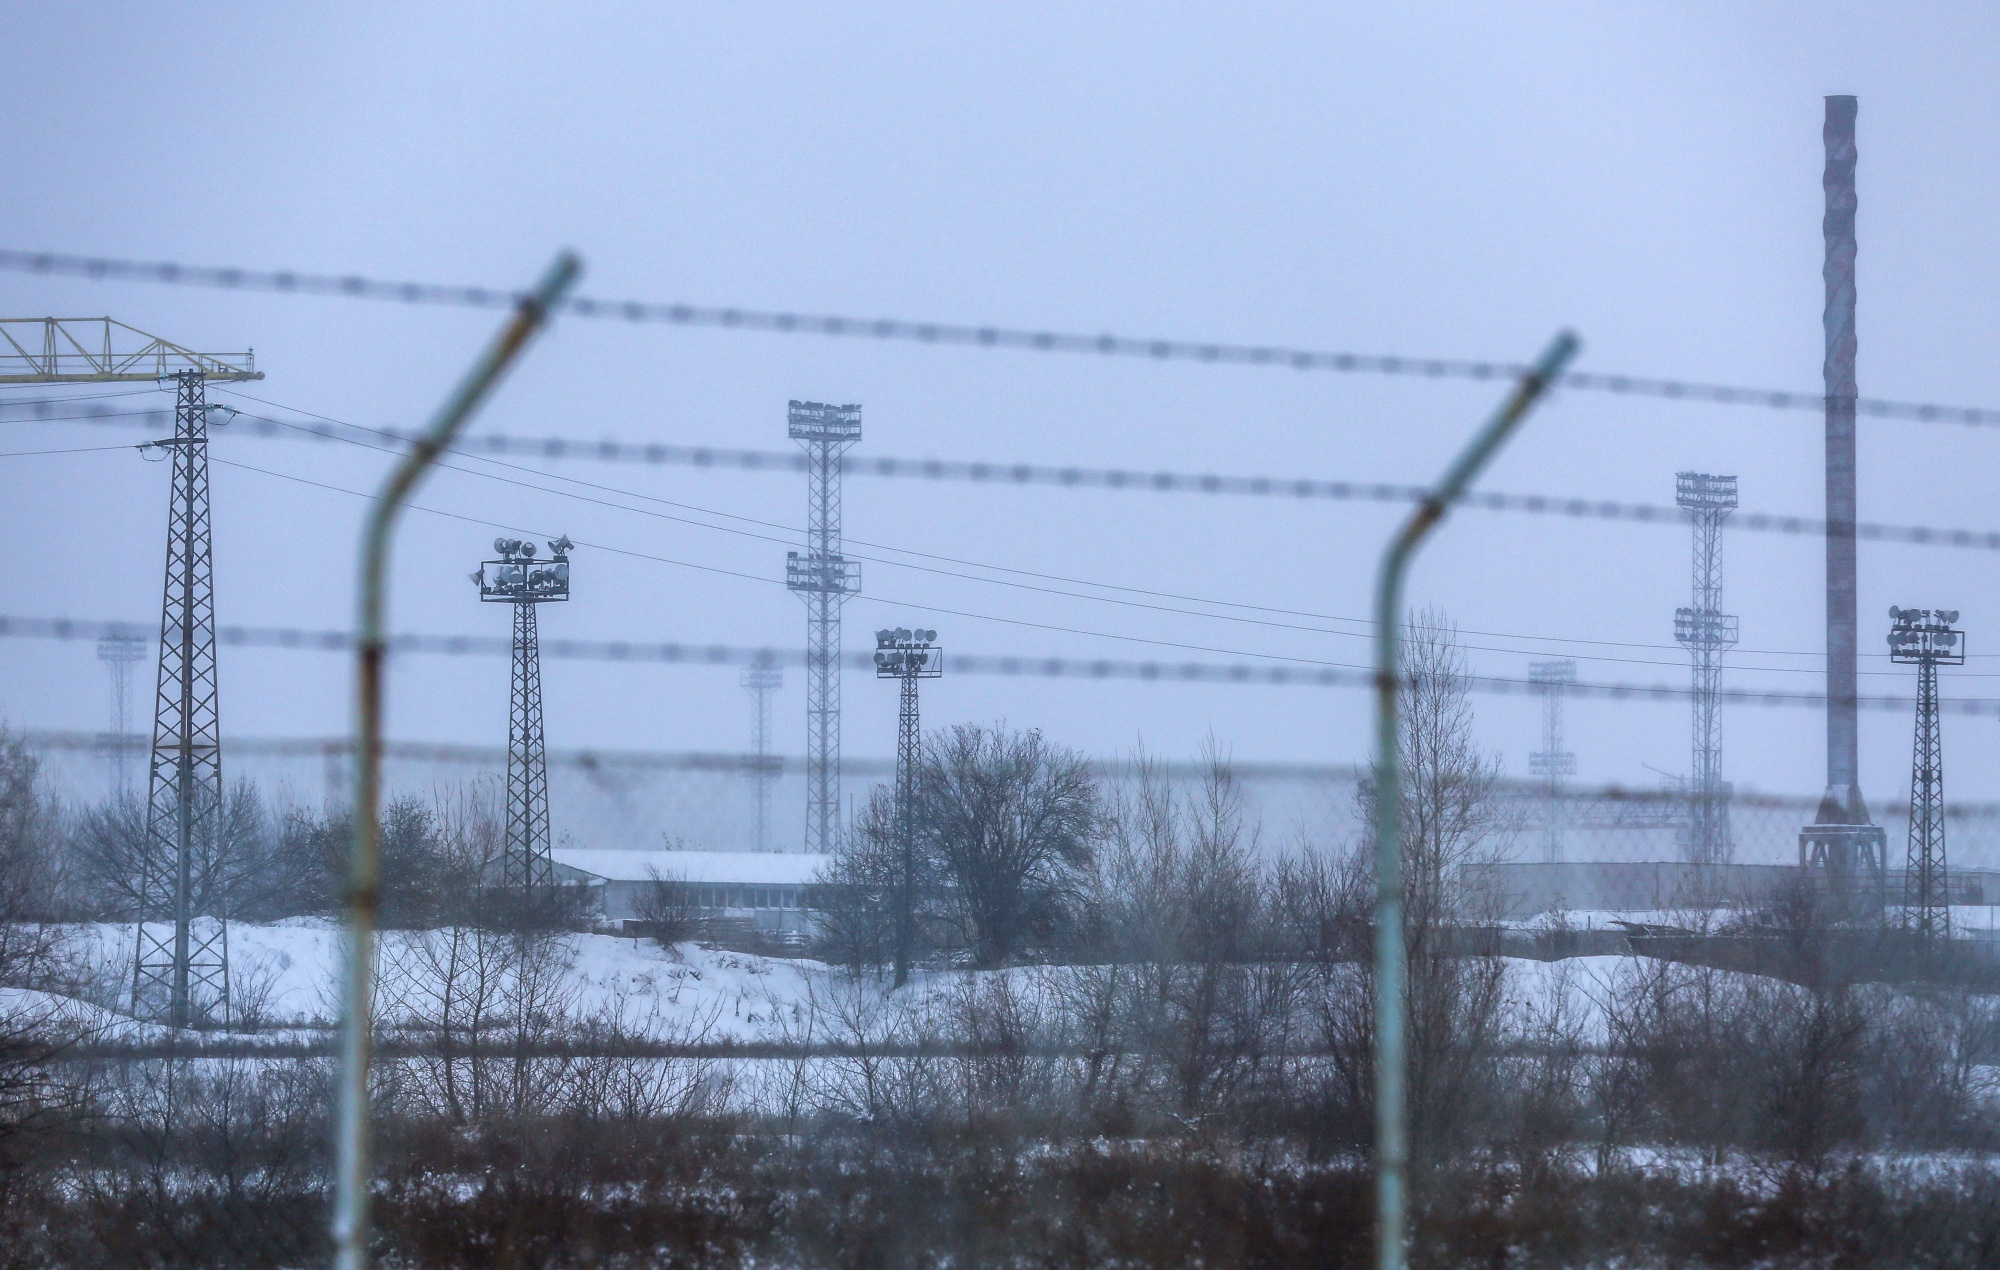 A barbed wire perimeter fence surrounds the proposed plant site. Photographer: Oliver Bunic/Bloomberg